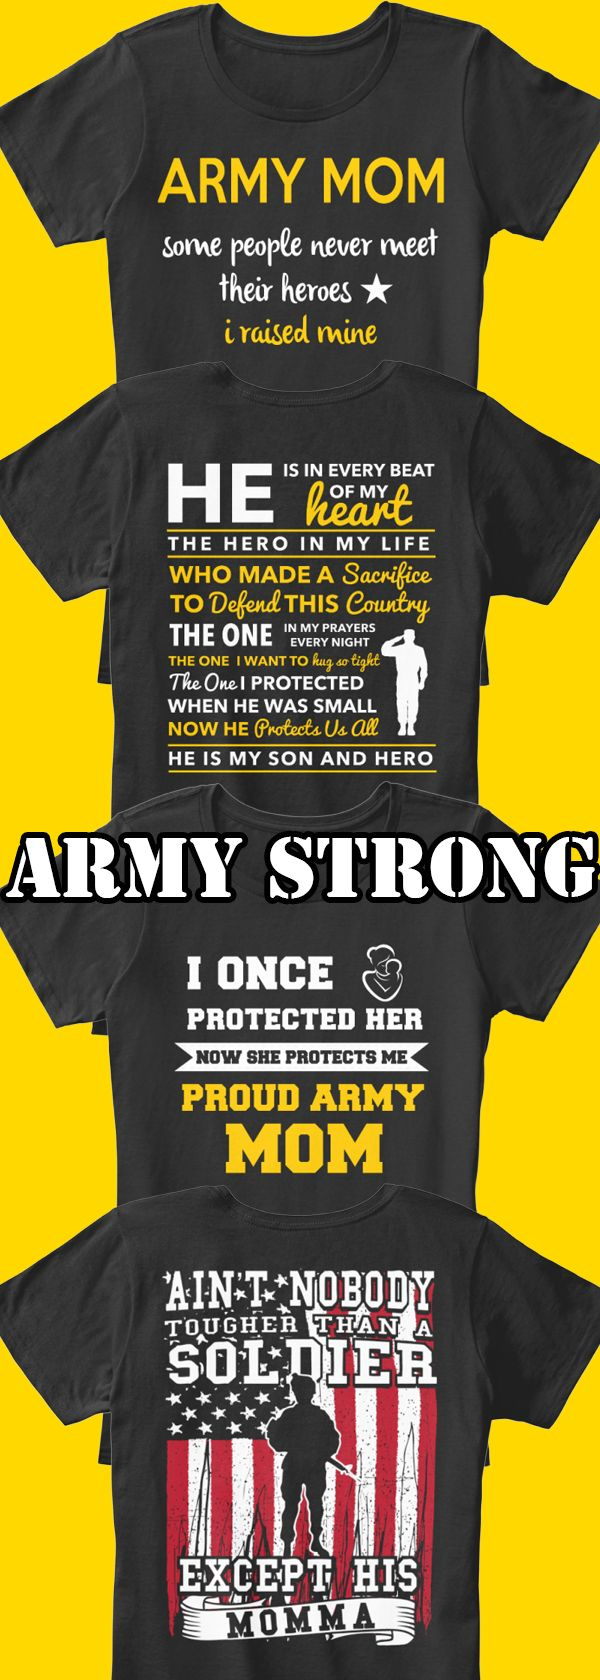 Are you a proud army mom or know someone who is? Show your support with these new shirts you can only find here. Great for you or as a gift! Only 2 days left for free shipping so act now! #ArmyStrong #Armymom